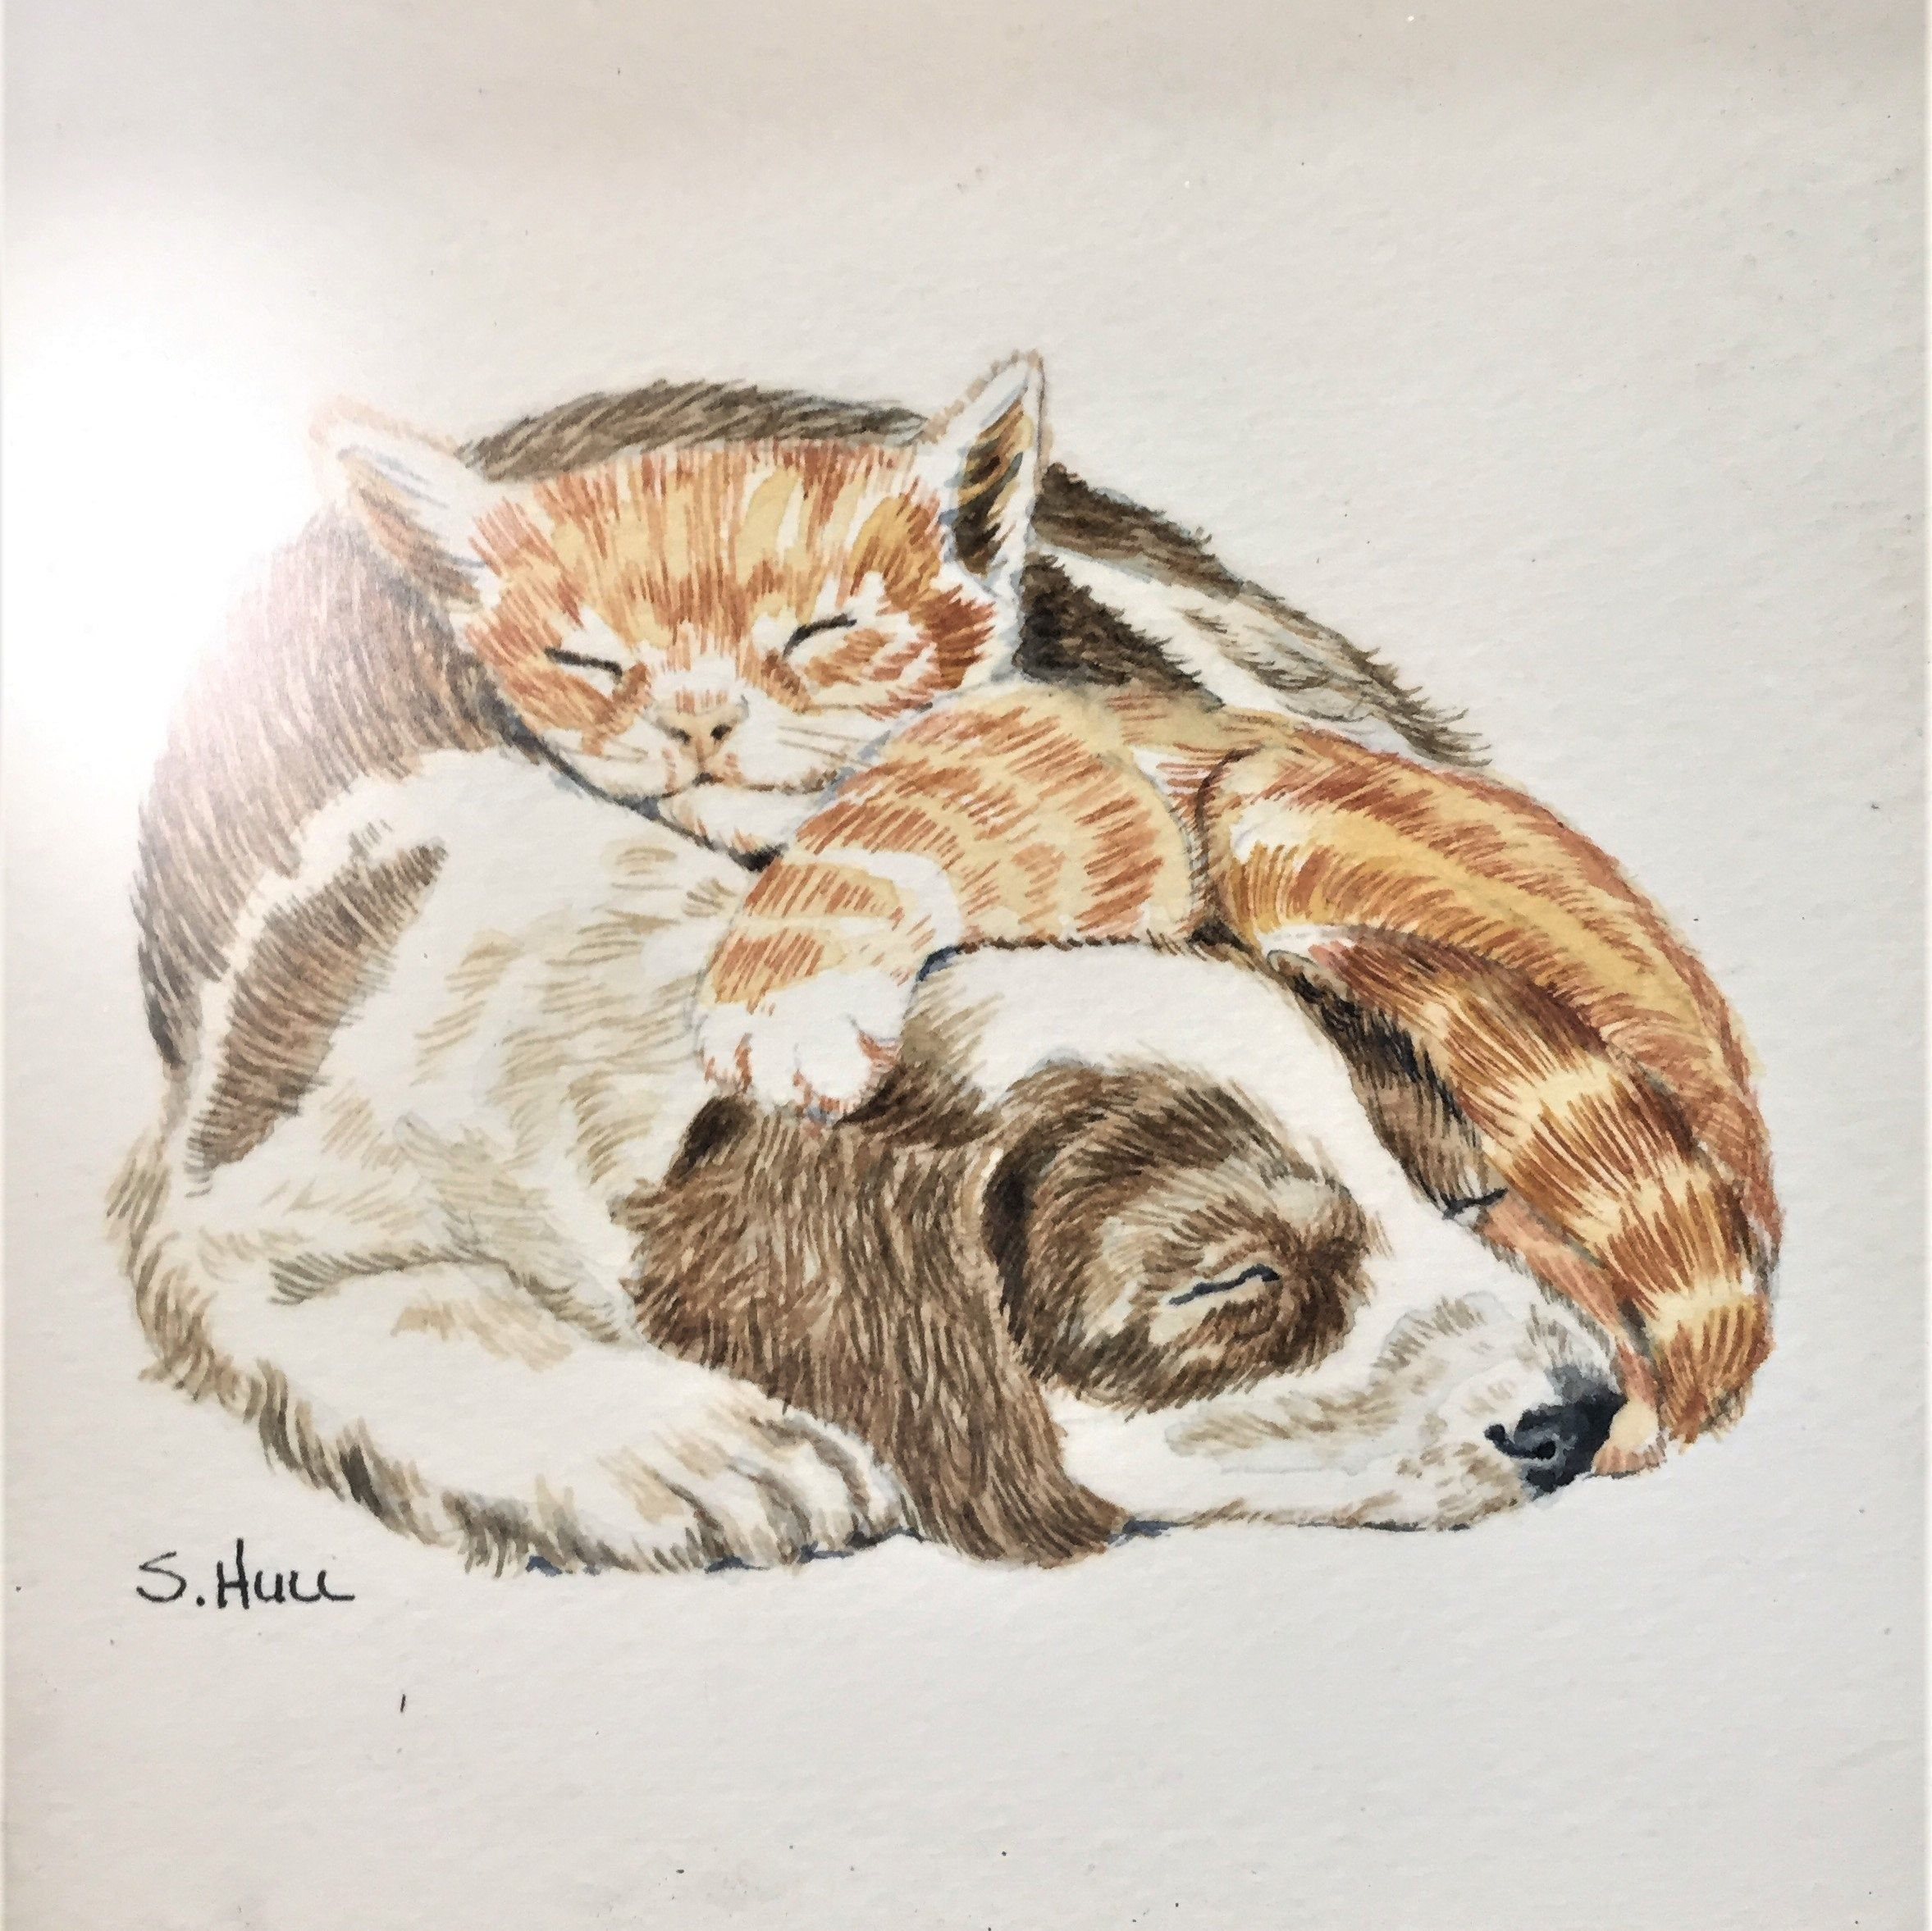 Framed Pencil Art Color Pencil Drawing Puppy And Kitten Snuggling Artist Signed S Hull Free Usa Shipping Ever Cute Puppies And Kittens Cute Puppies Kitten Art